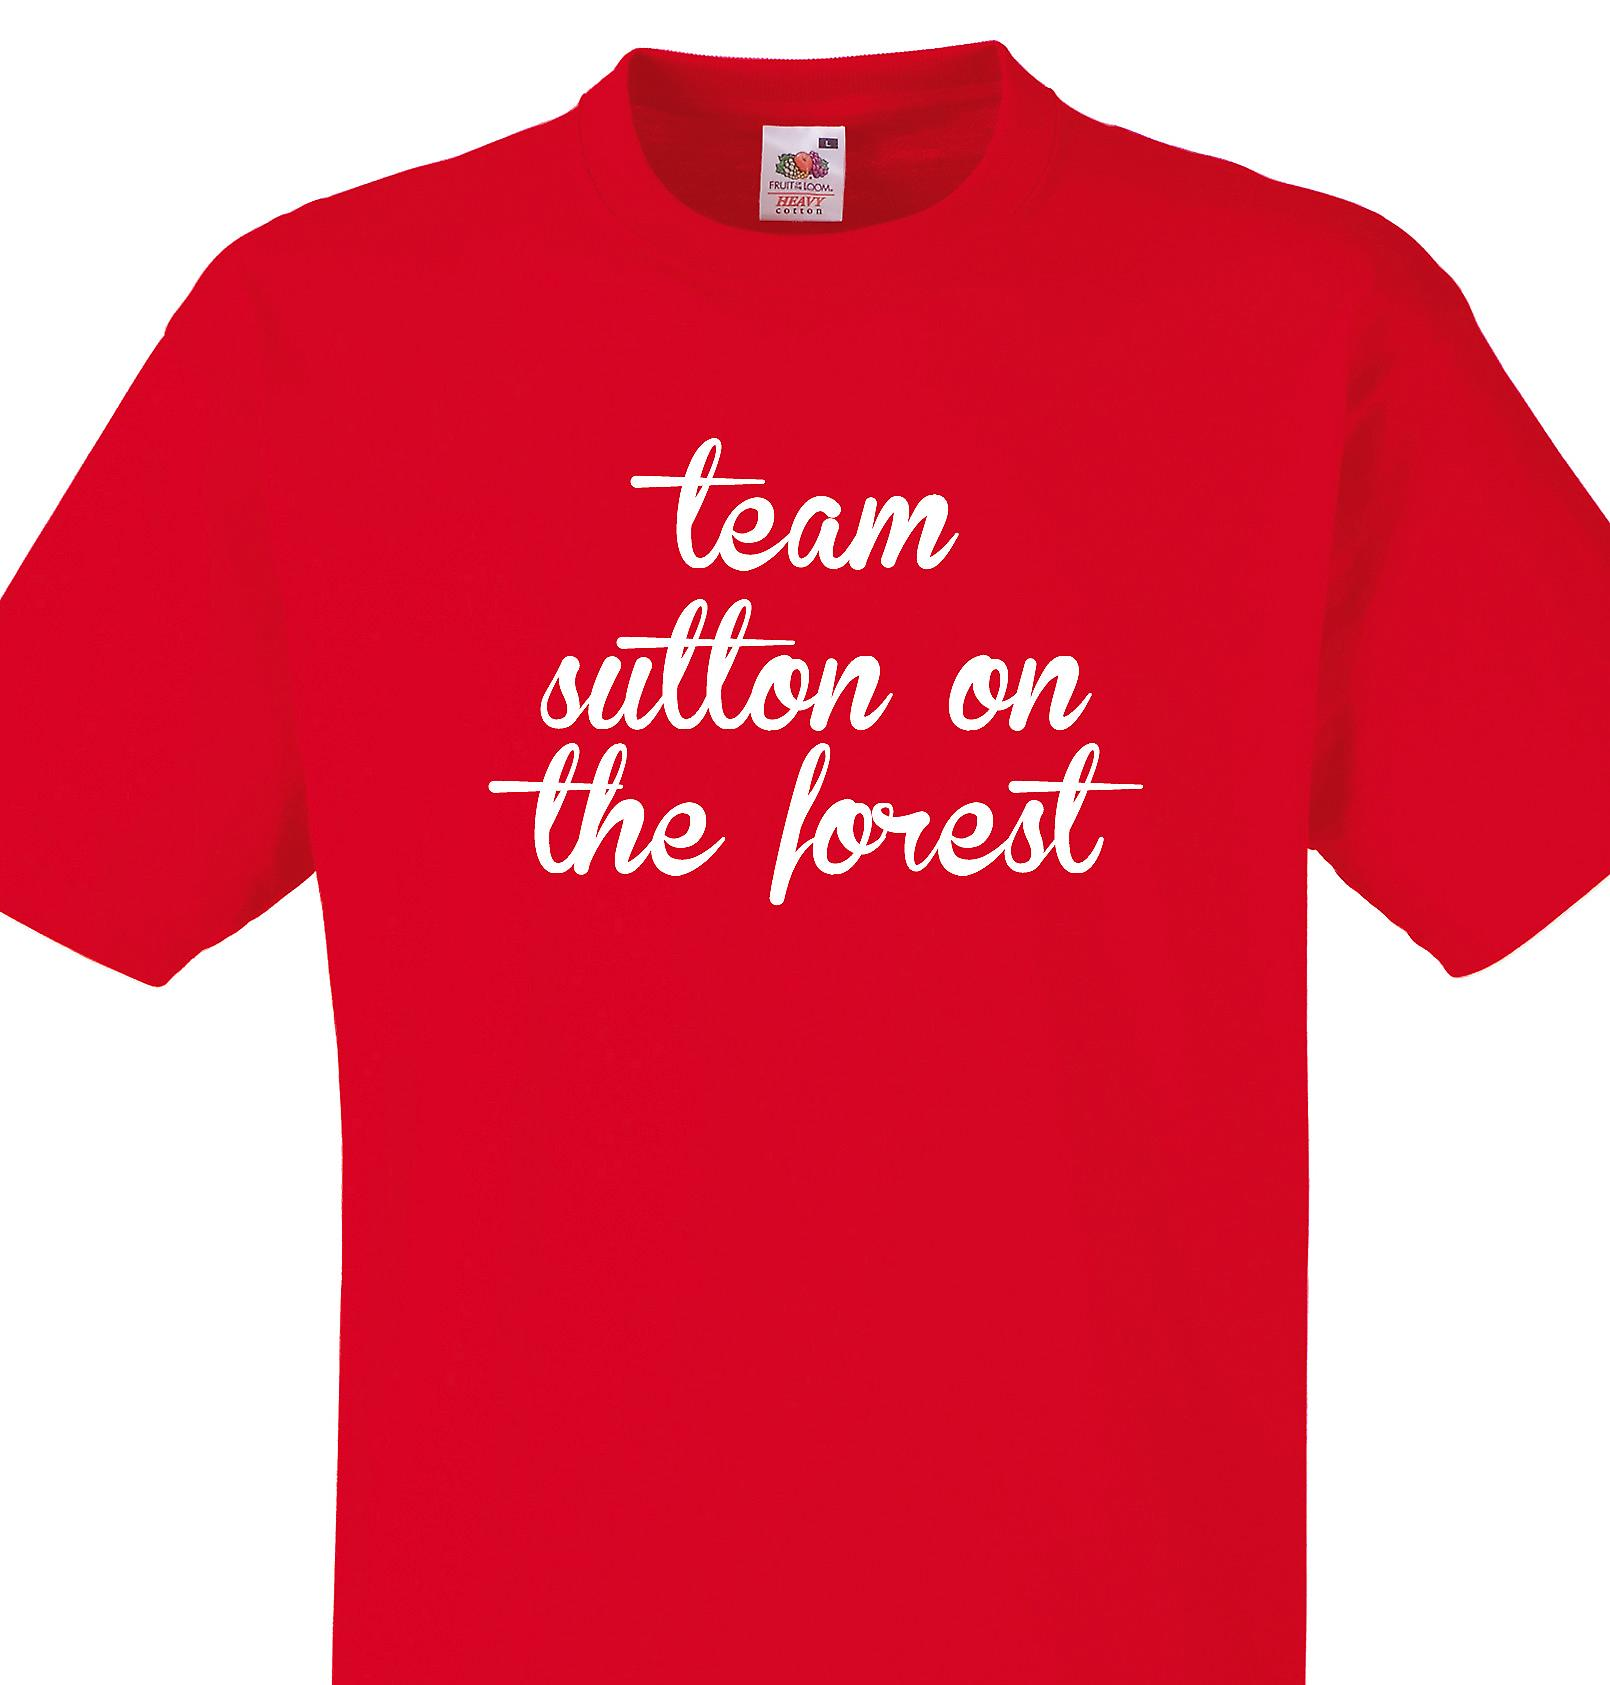 Team Sutton on the forest Red T shirt